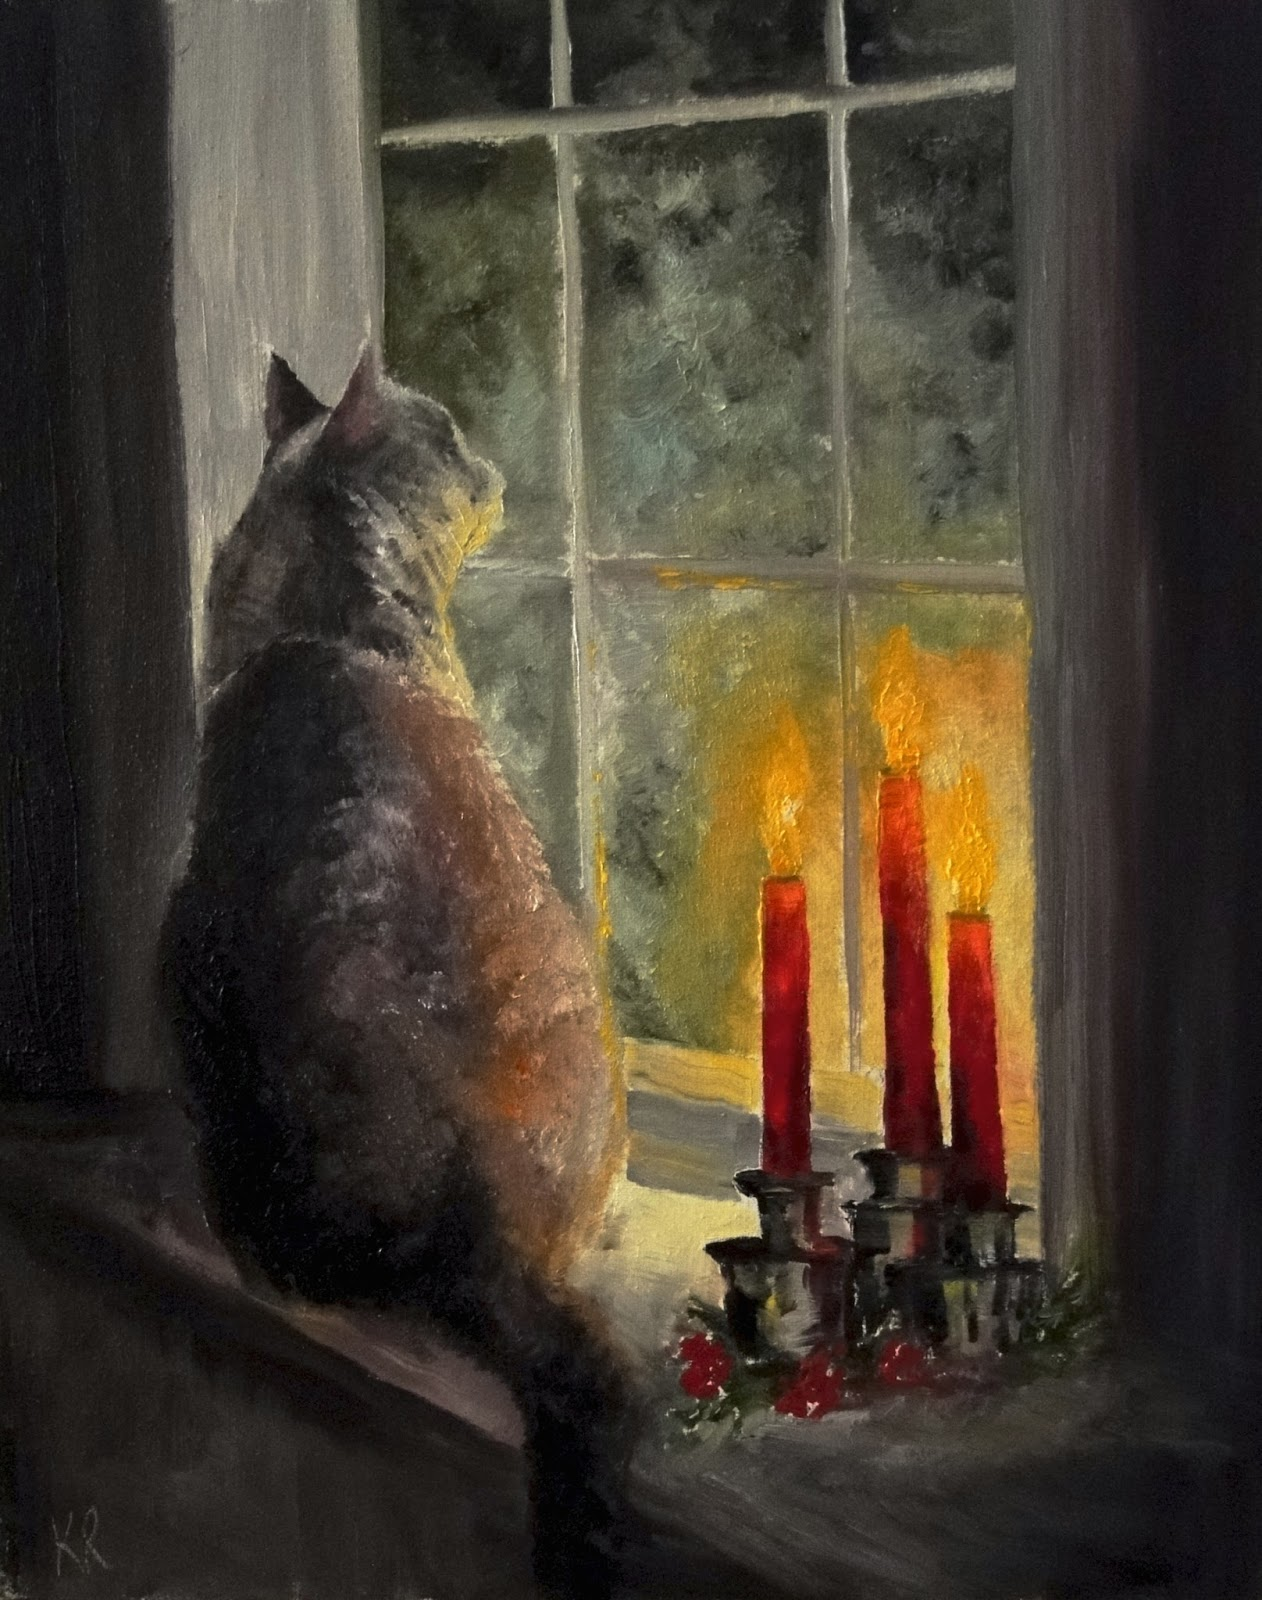 Oil painting of a grey cat on a windowsill, lit by candlelight and waiting for santa, a pet portrait by Karen